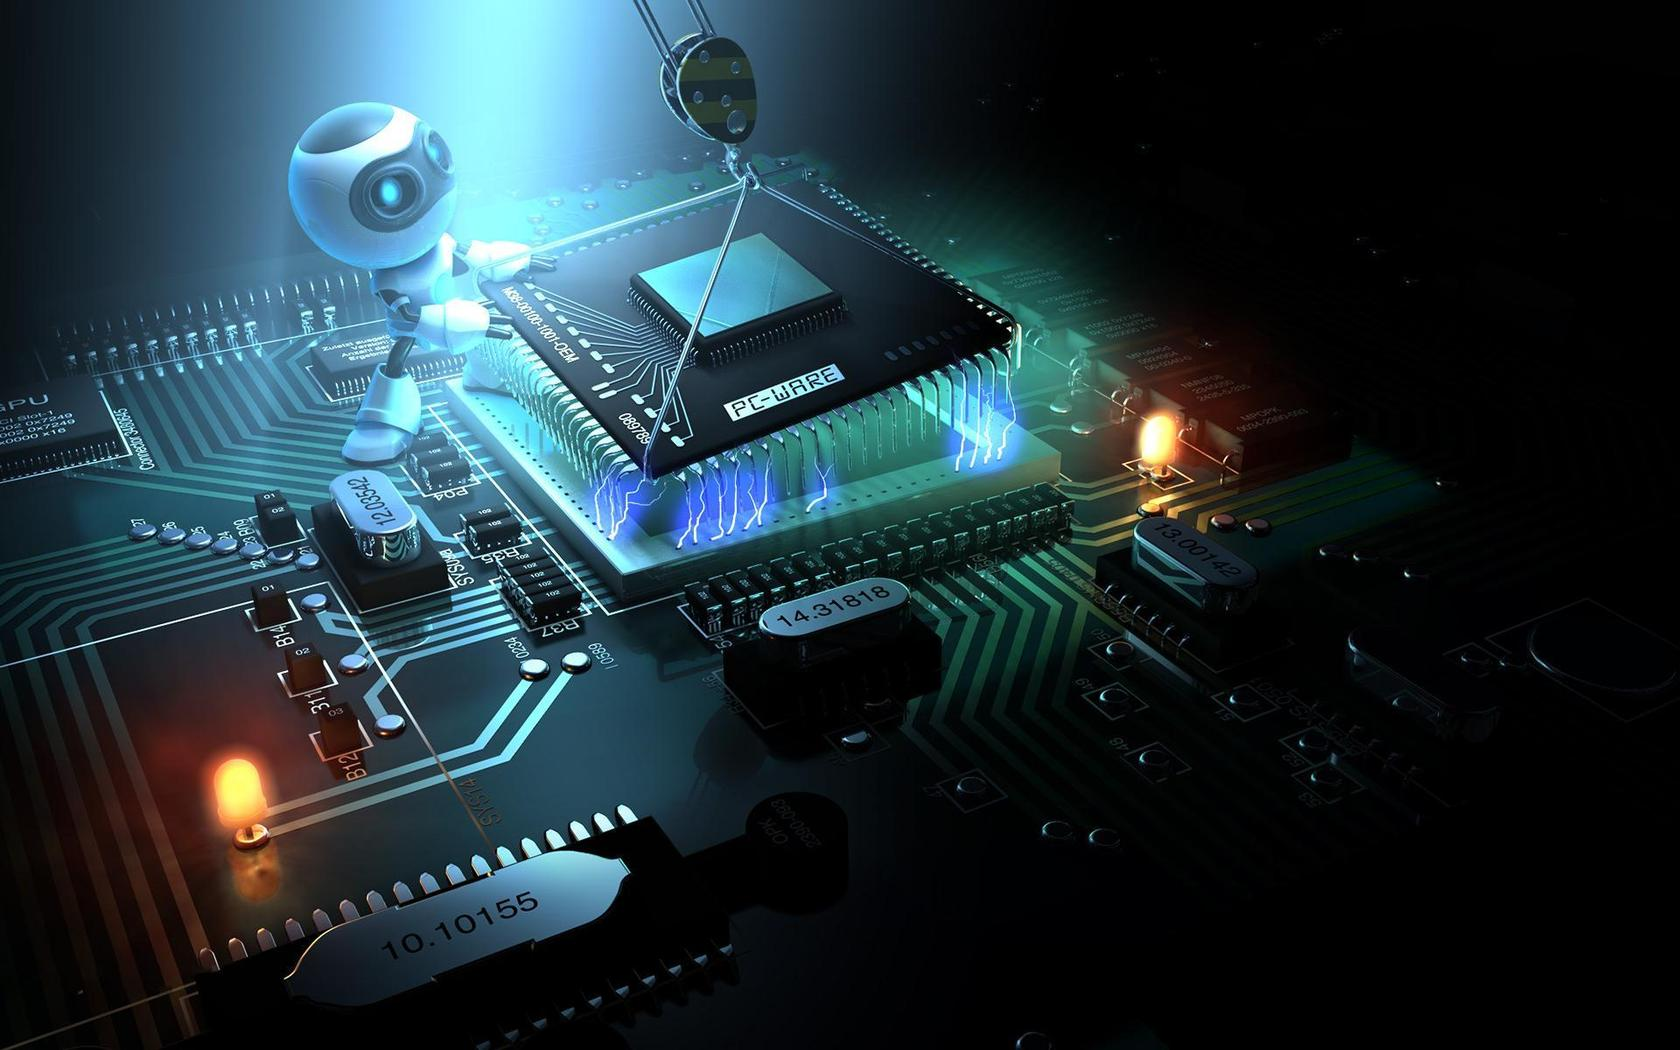 Science And Technology Wallpaper